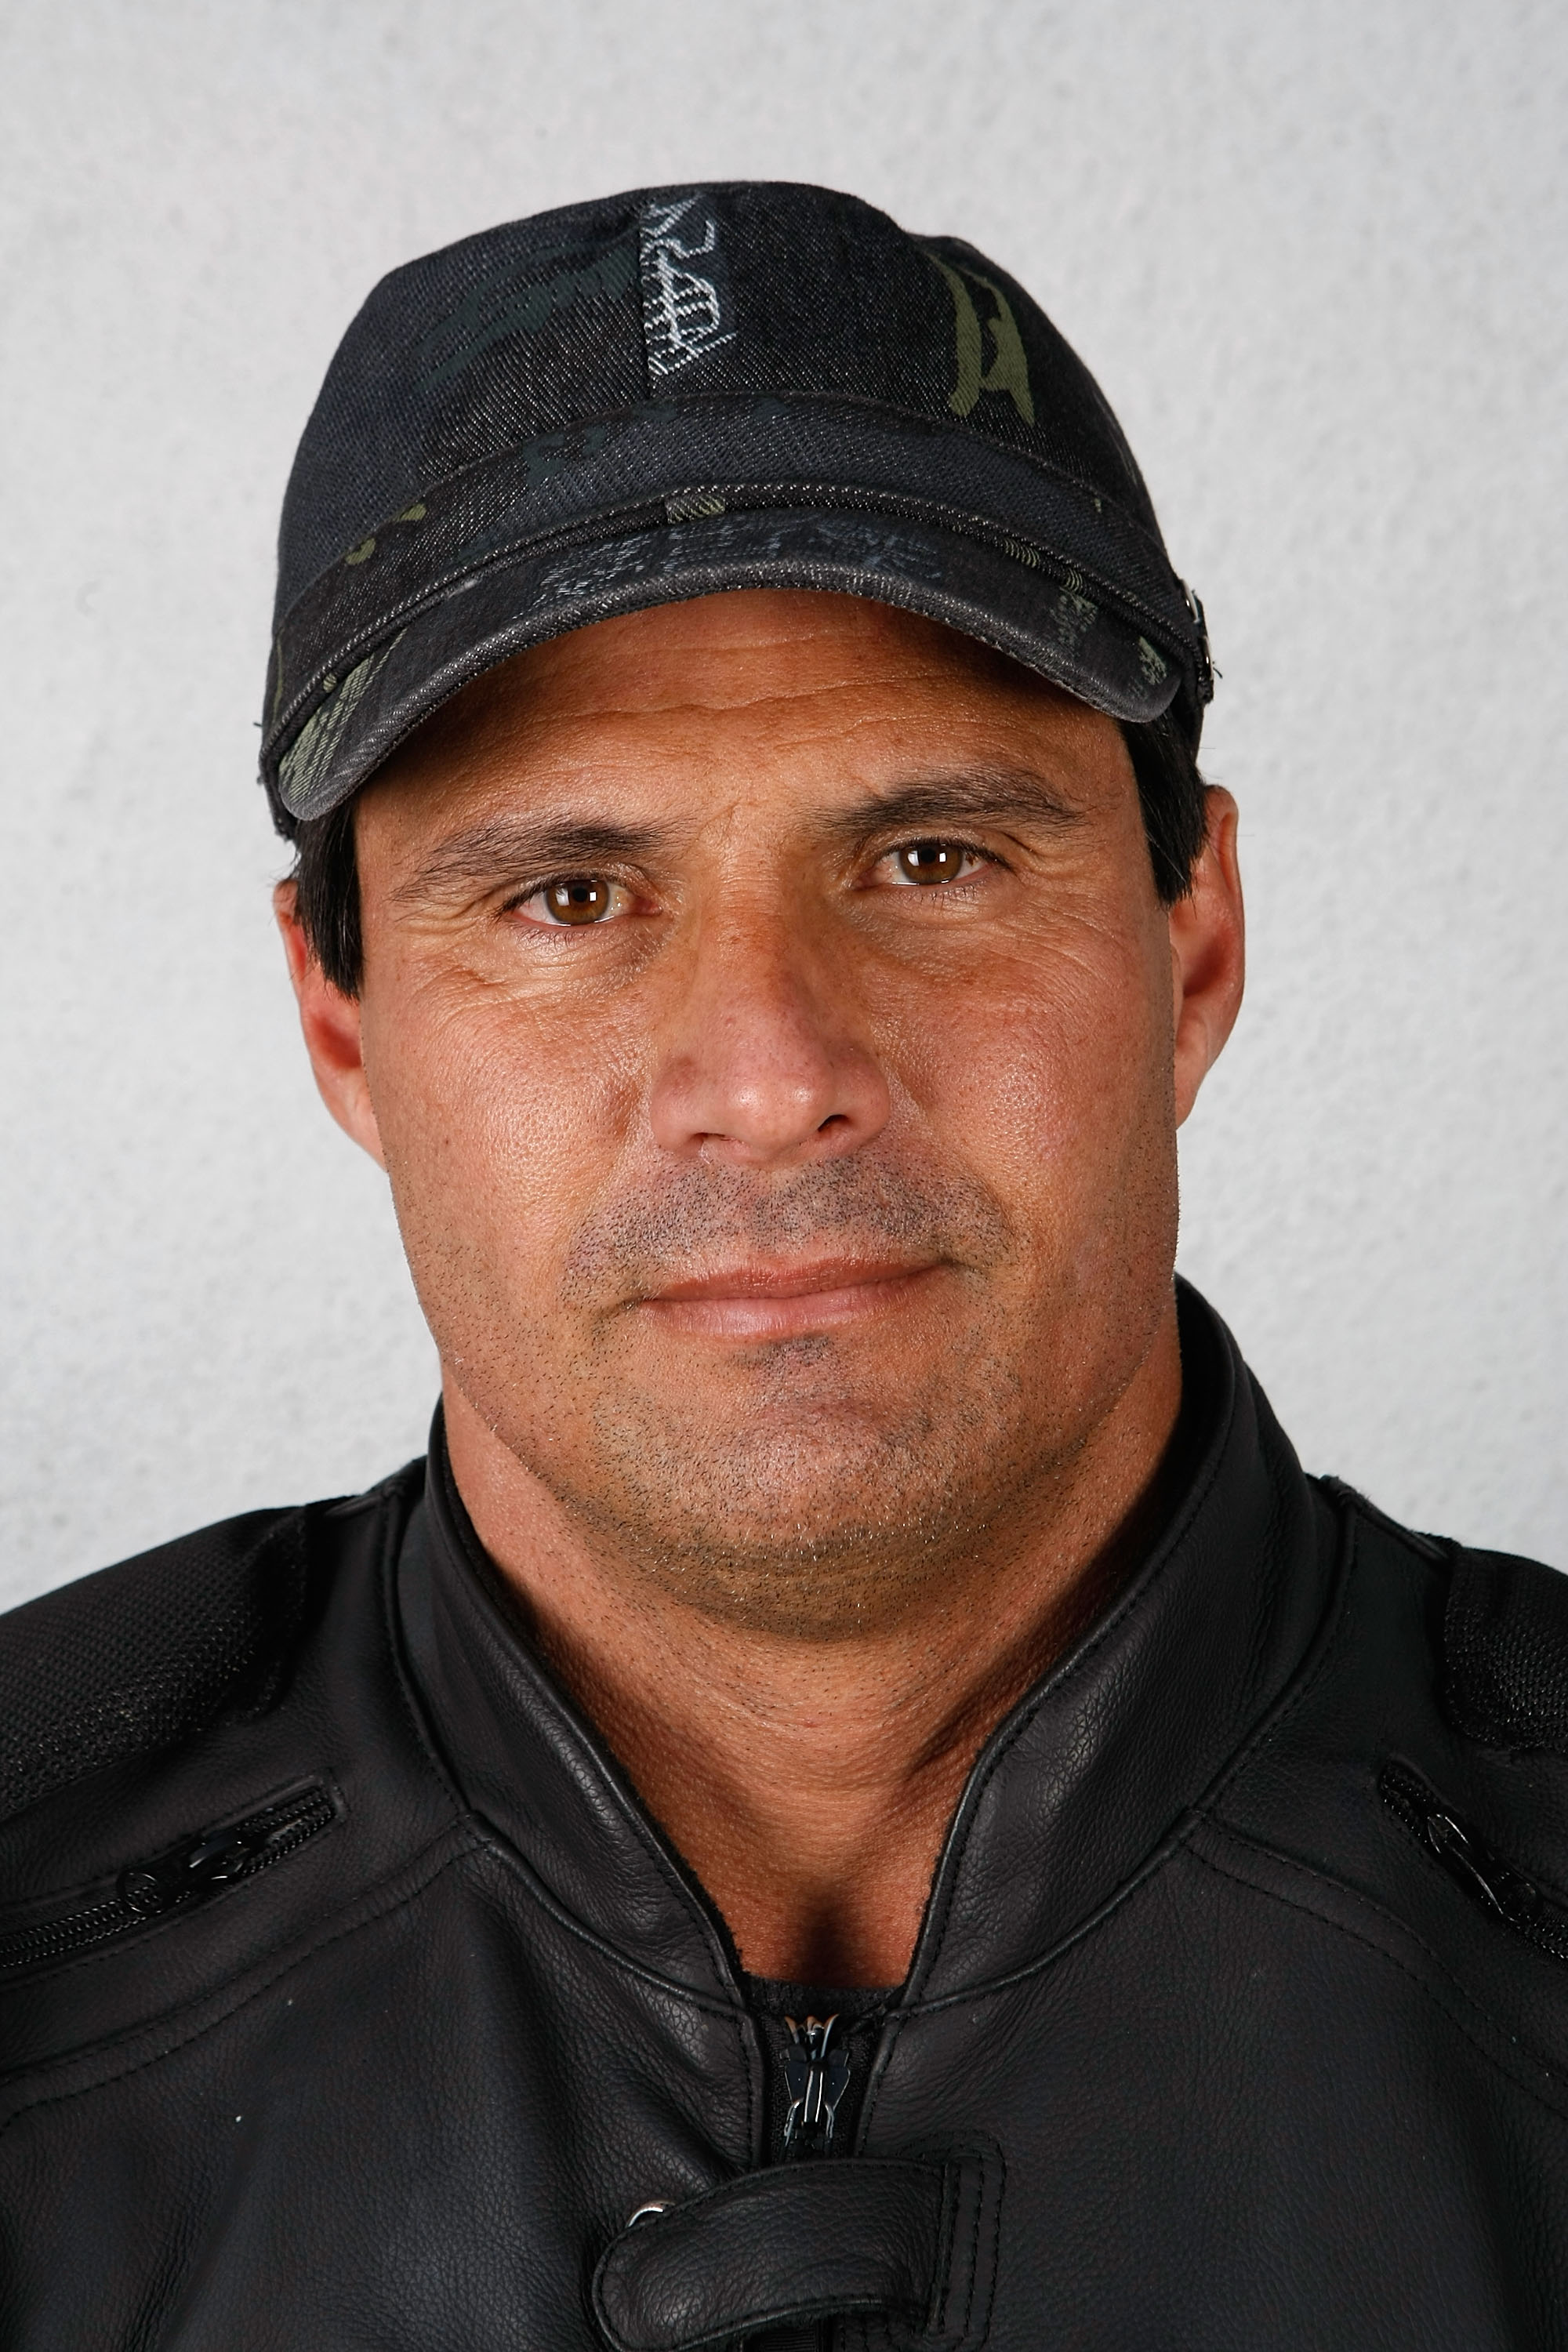 LOS ANGELES, CA - APRIL 07:  ***EXCLUSIVE ACCESS***  Former baseball player and author Jose Canseco poses for a portrait at Book Soup on April 7, 2008 in Los Angeles, California.  (Photo by Michael Buckner/Getty Images)